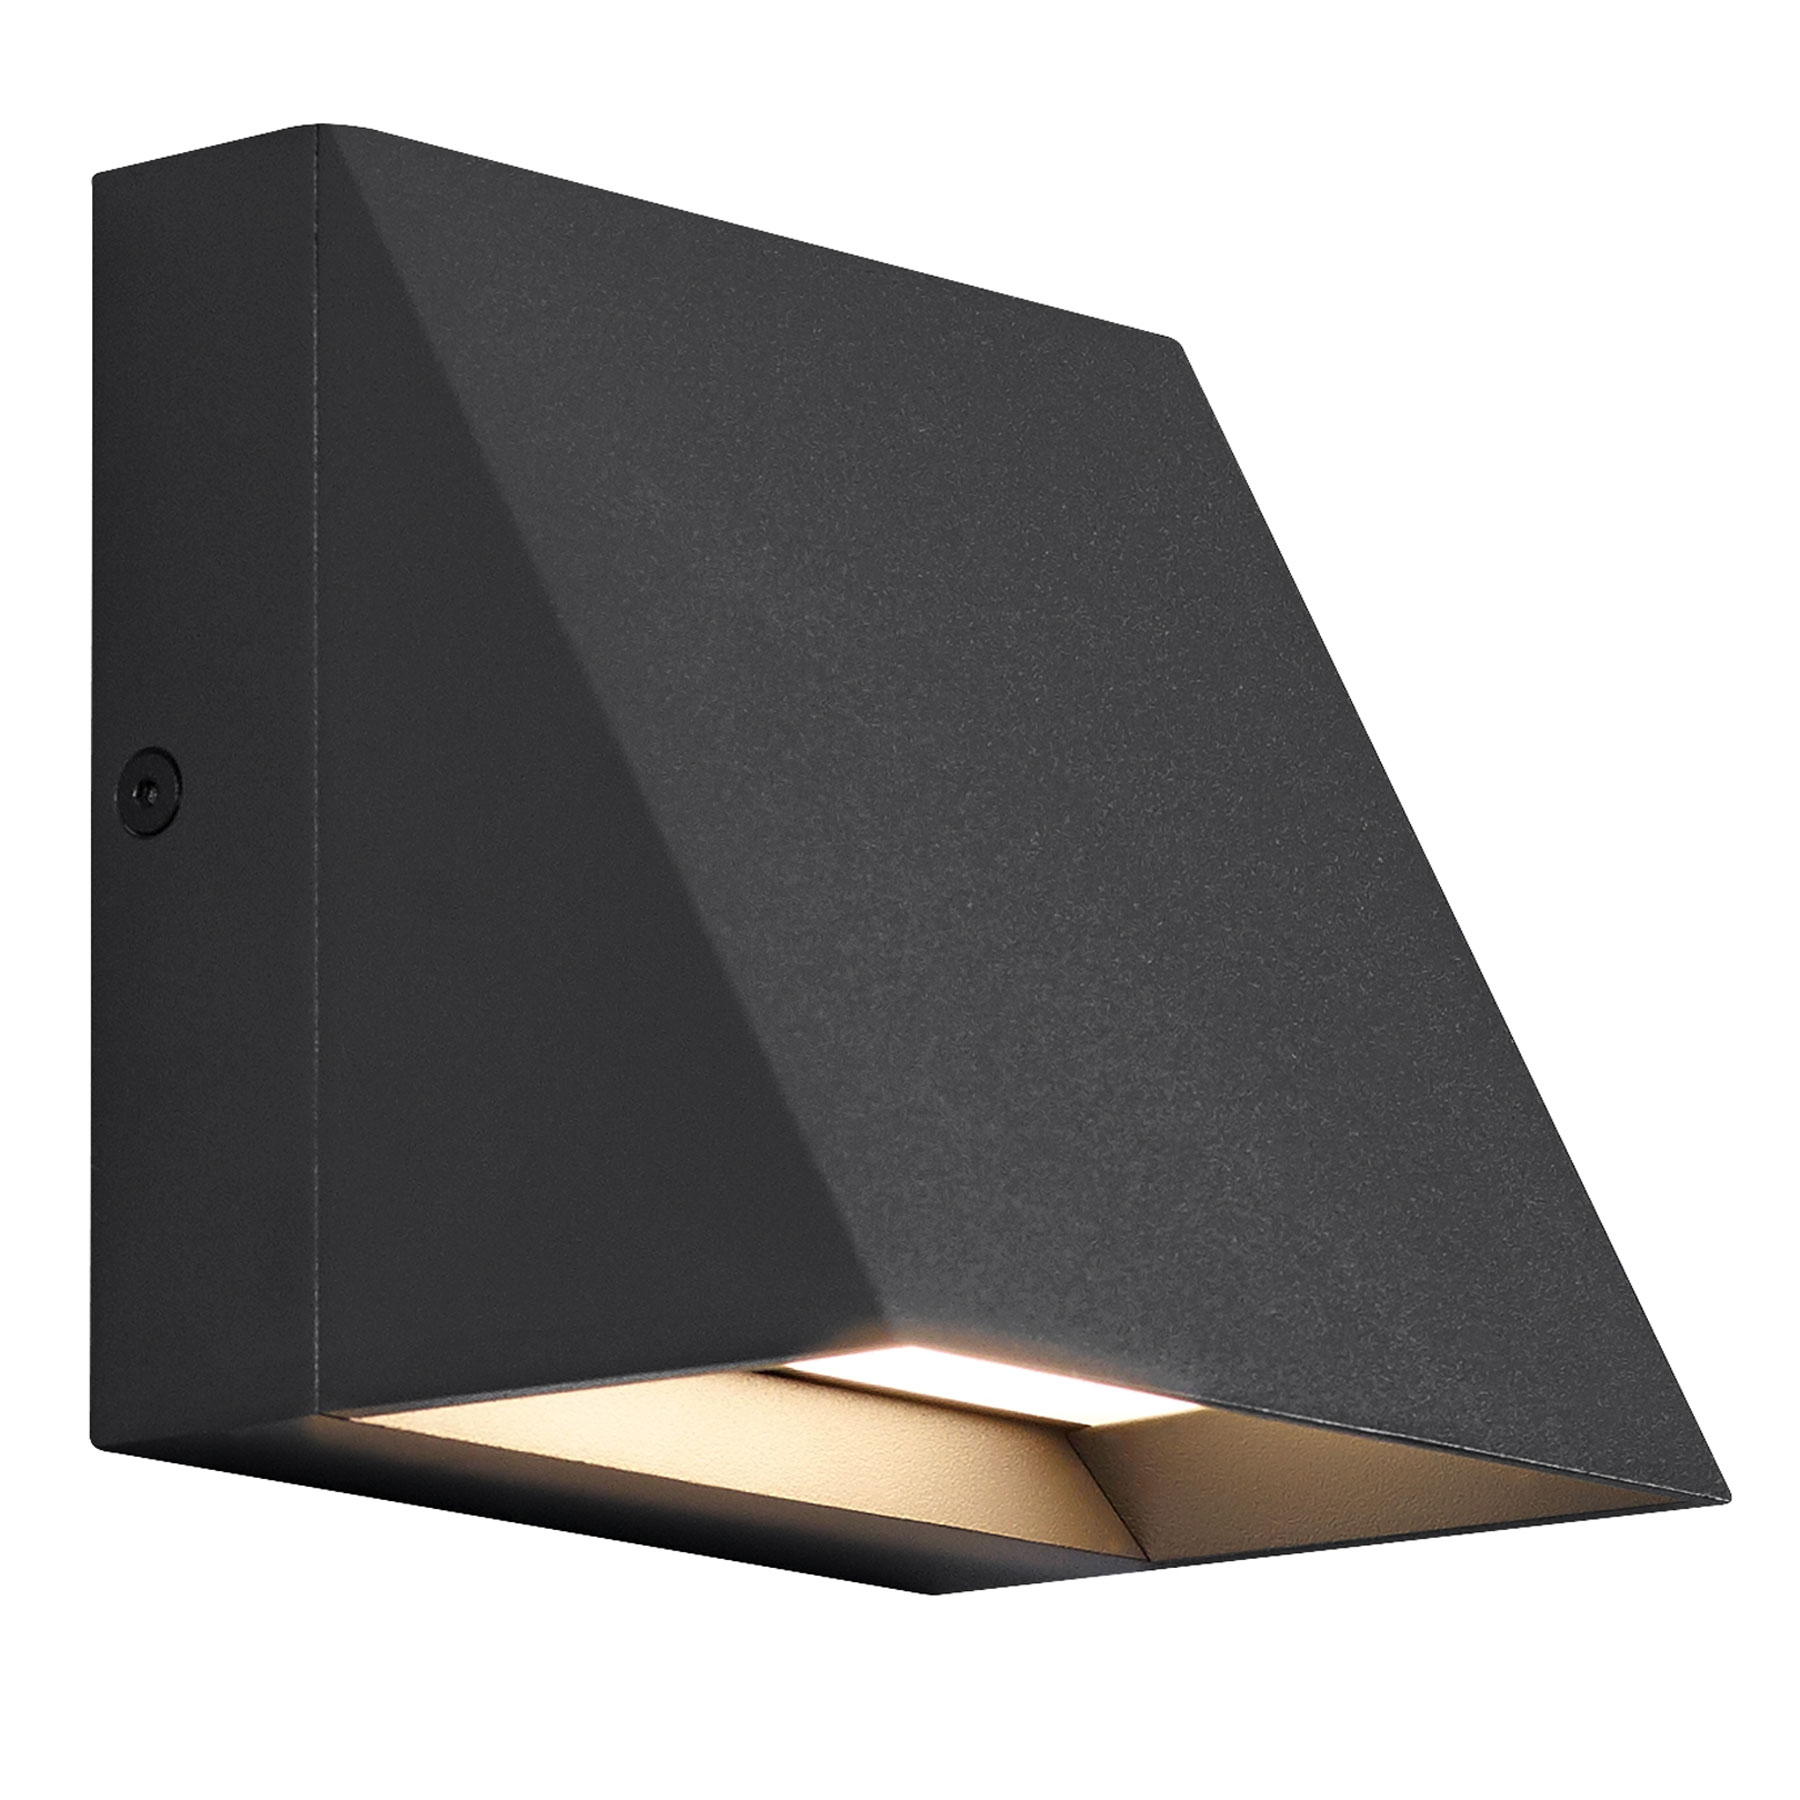 Wall Light Pitch Outdoor Wall Light By Tech Lighting 700wspitsb Led830